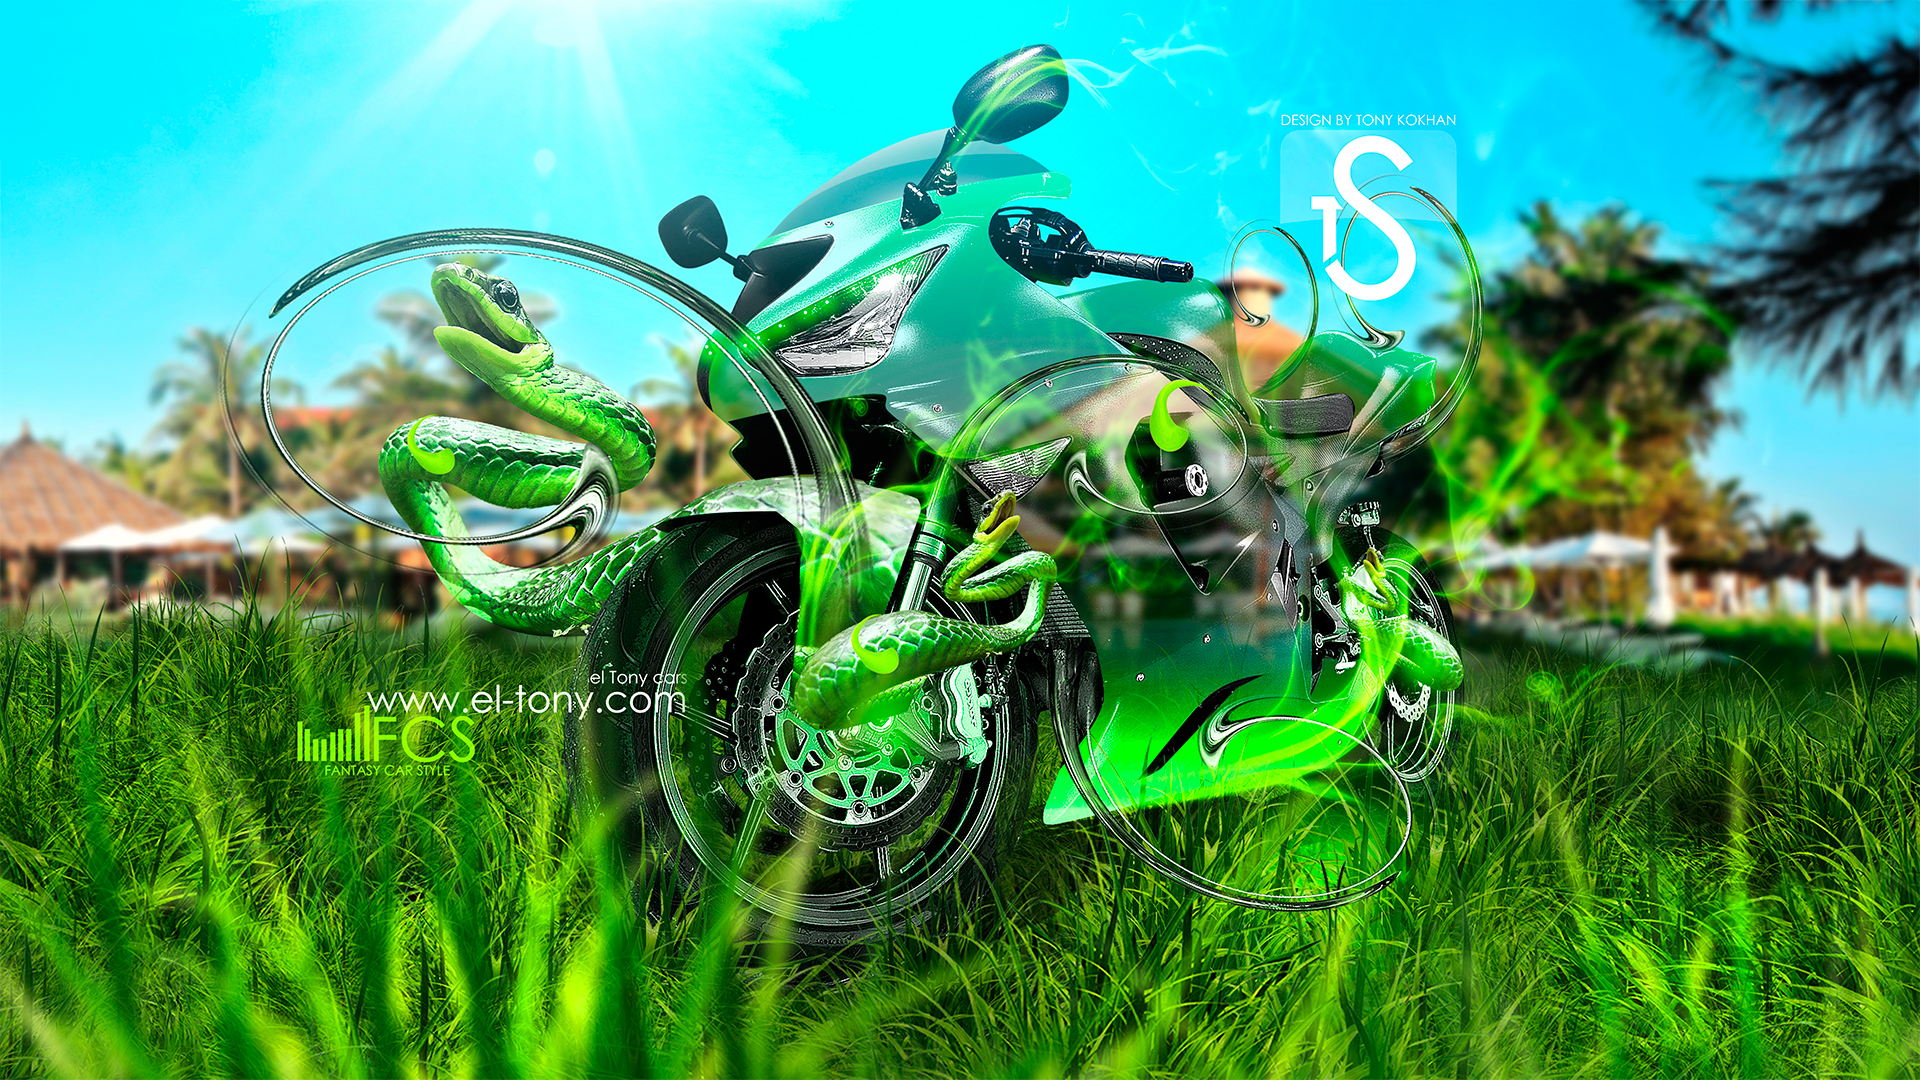 ... Moto Kawasaki Fantasy Green Snake Smoke Car 2013  ...